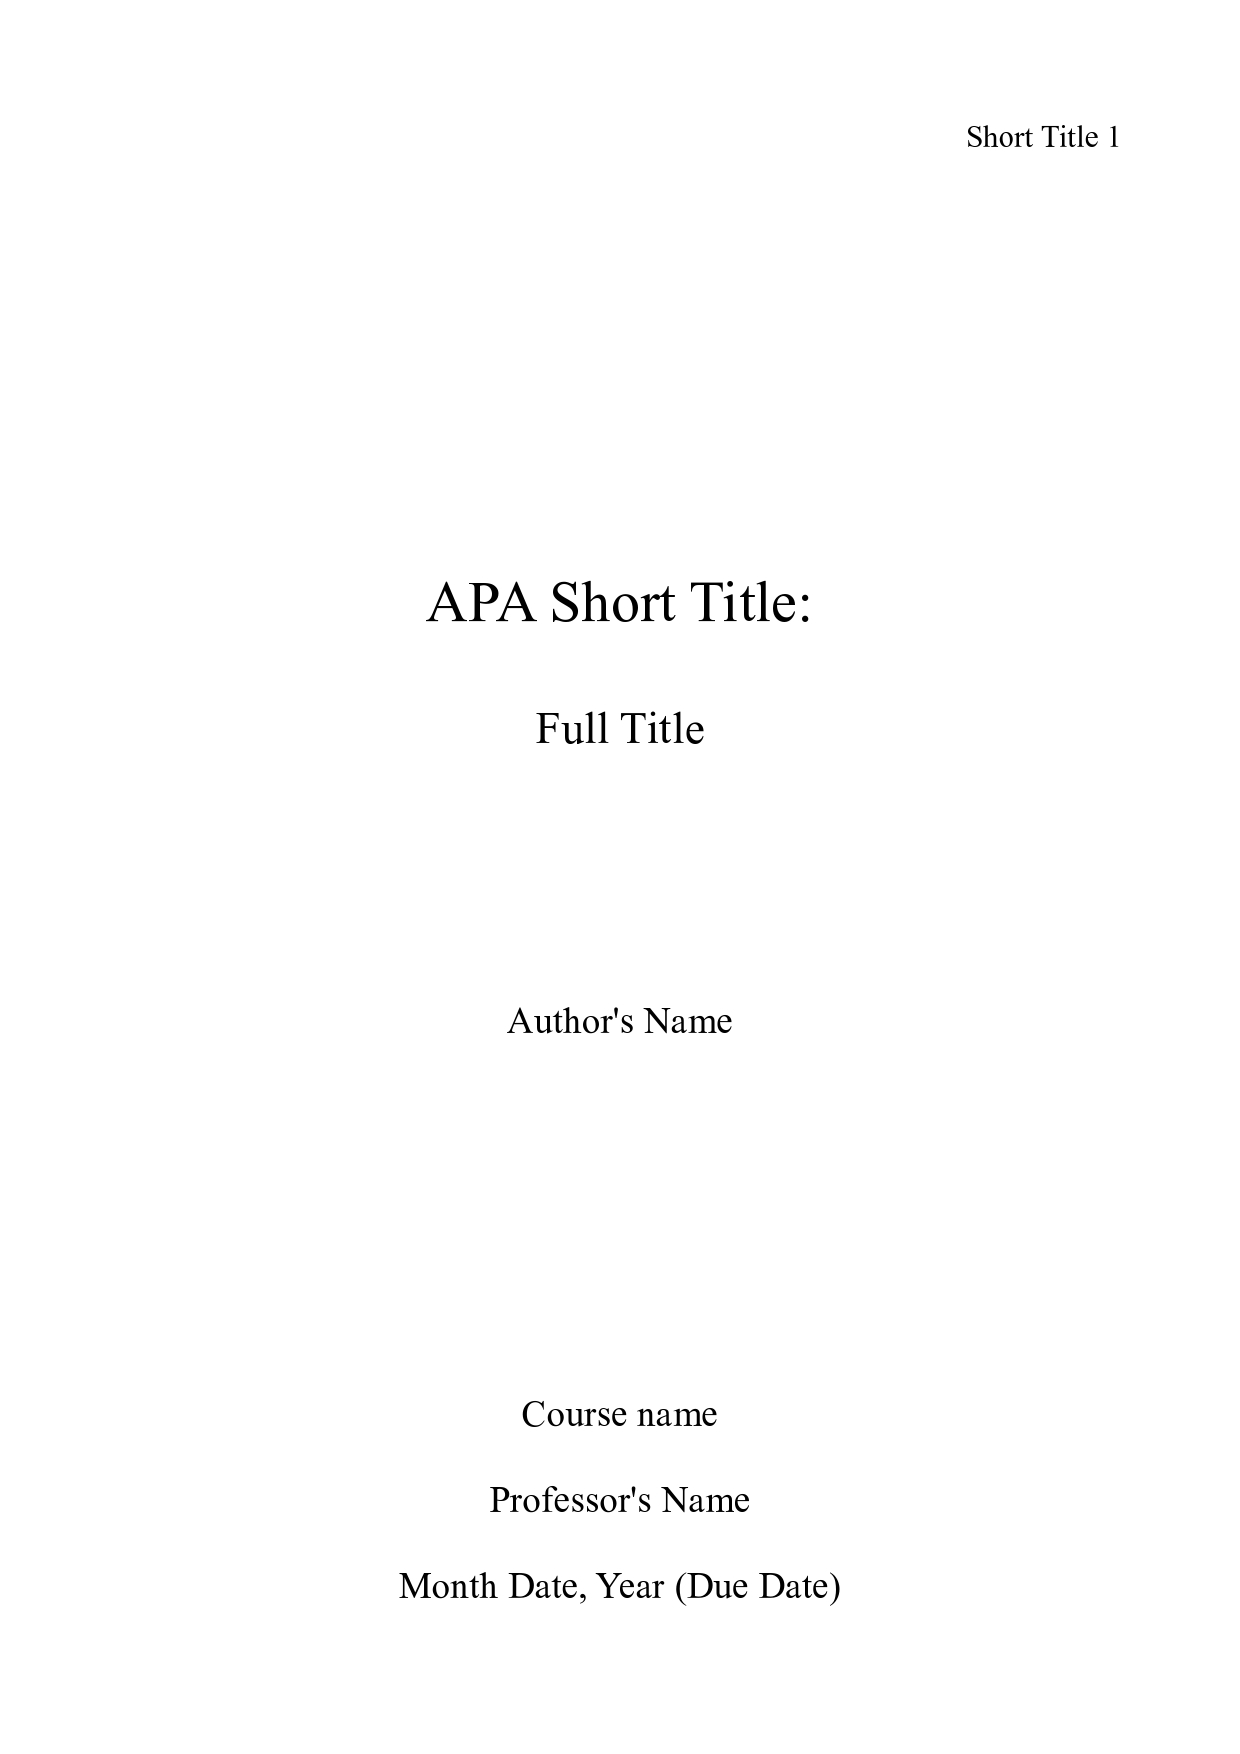 002 Essay Cover Page Template Apa Title Sample Fantastic Research Paper Example Mla Download Full